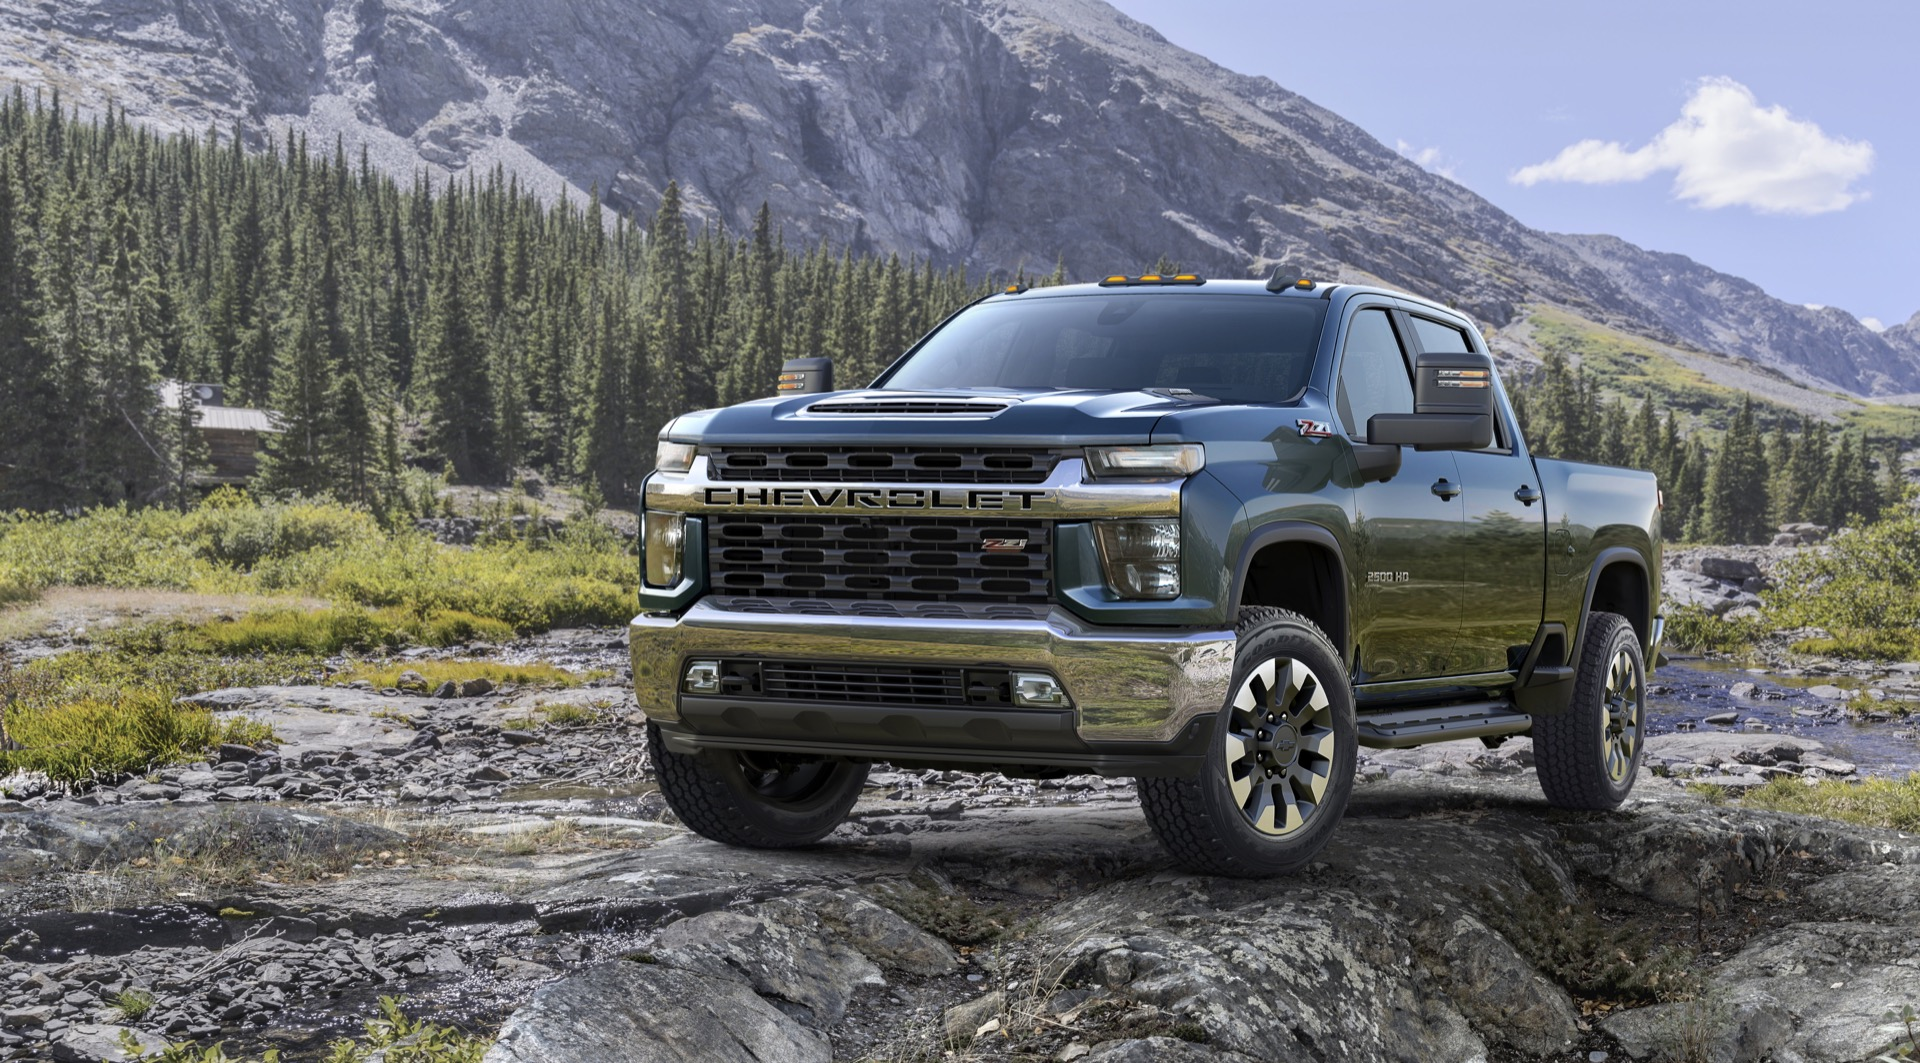 2021 Chevrolet Silverado 2500hd Chevy Review Ratings Specs Prices And Photos The Car Connection